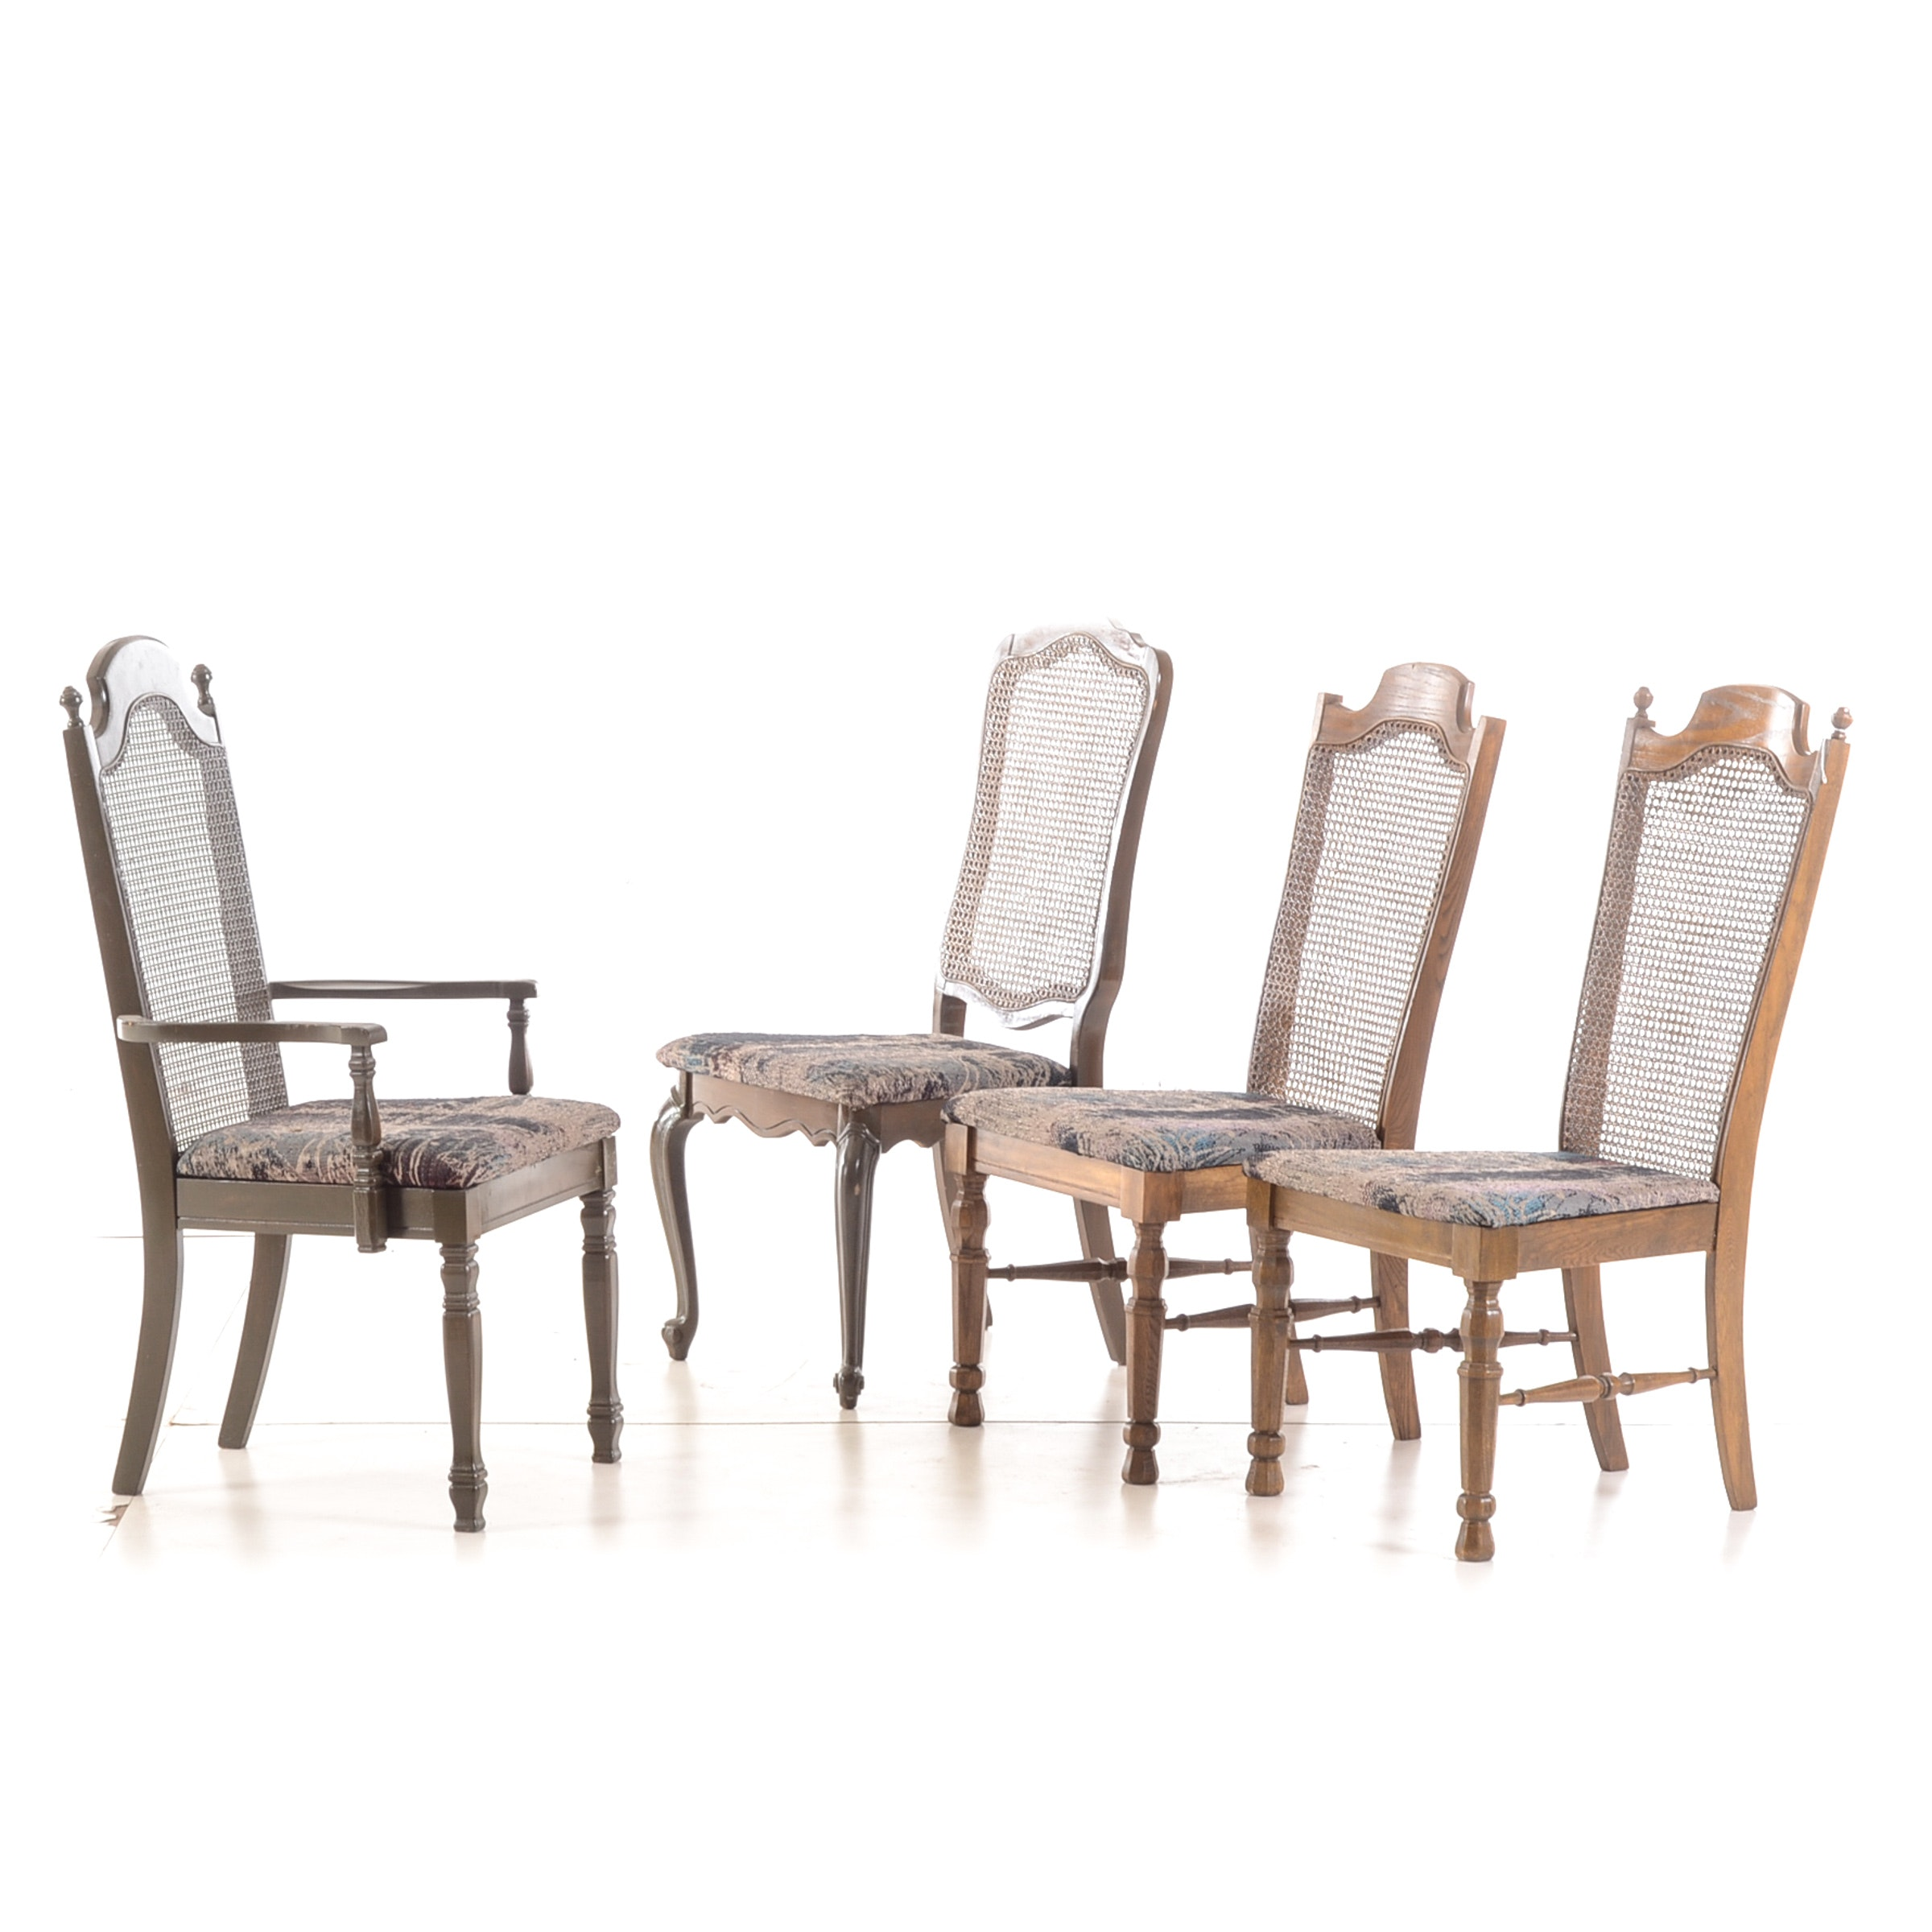 Four Varied Cane-Back Dining Chairs